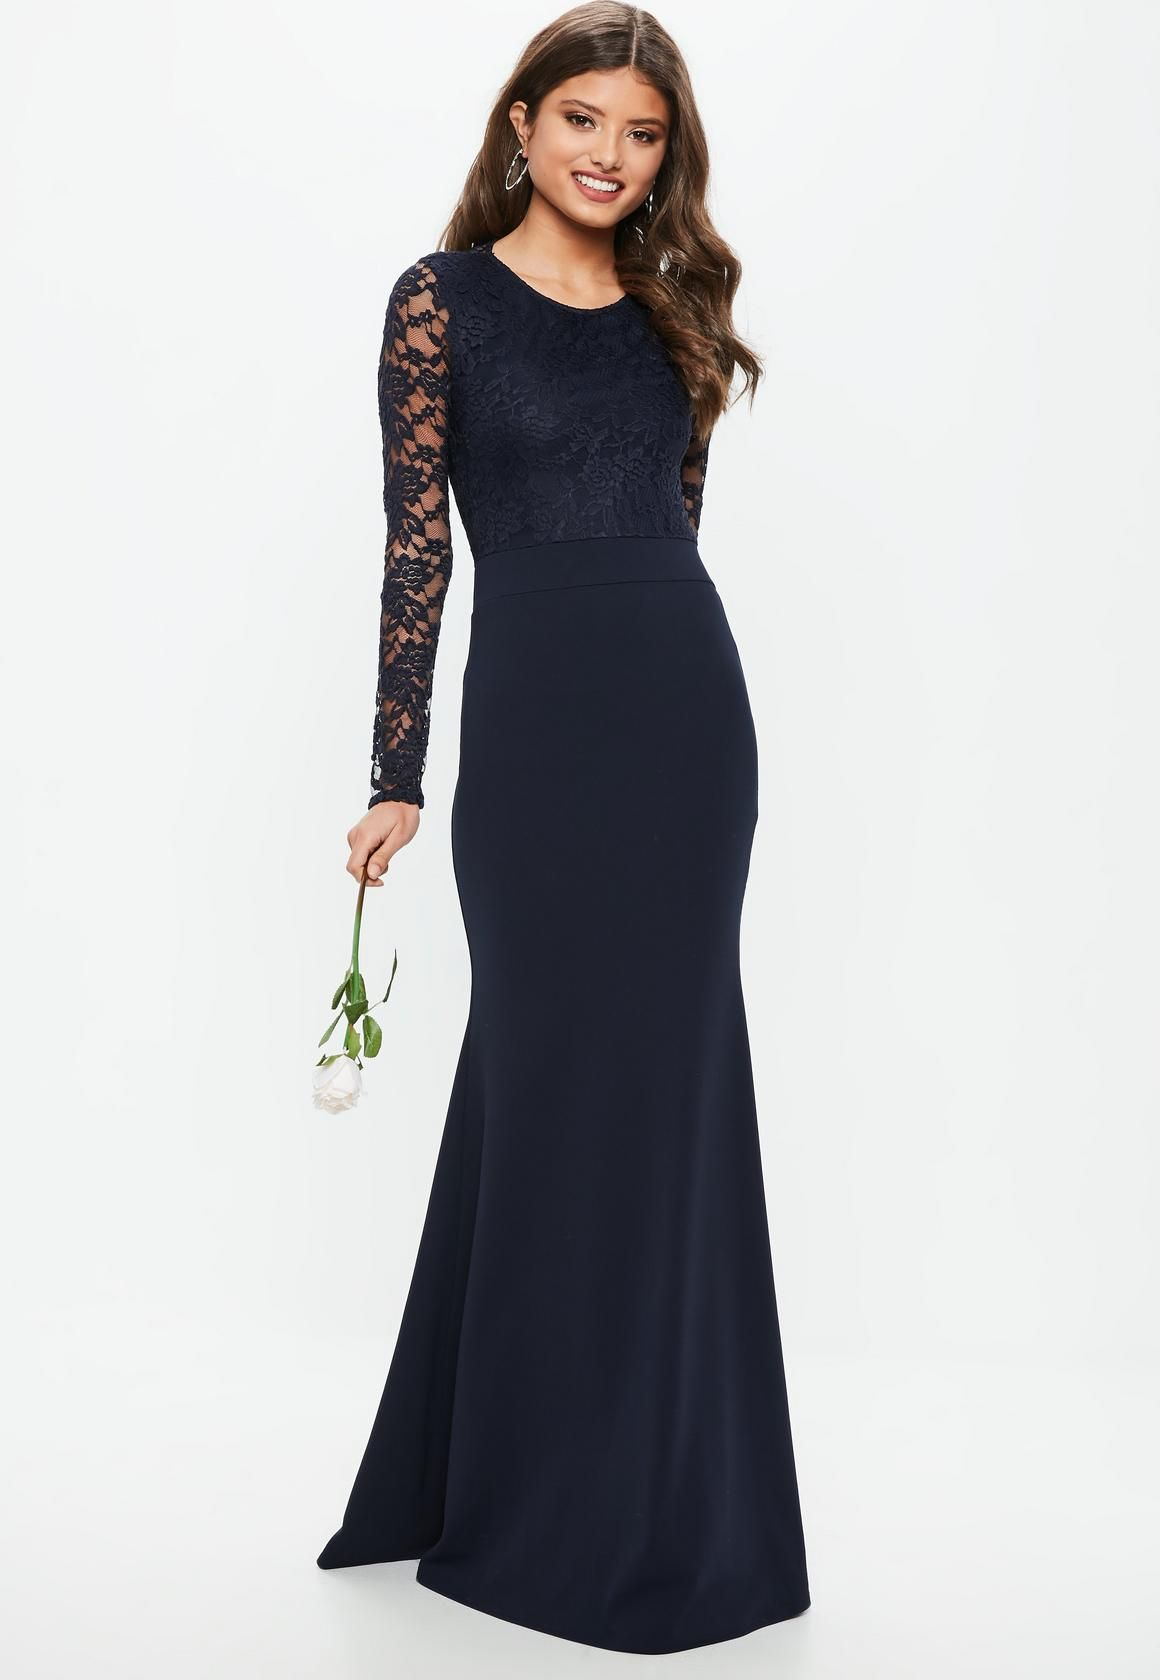 67440bb5fb4 Missguided - Bridesmaid Navy Round Neck Lace Insert Fishtail Maxi Dress